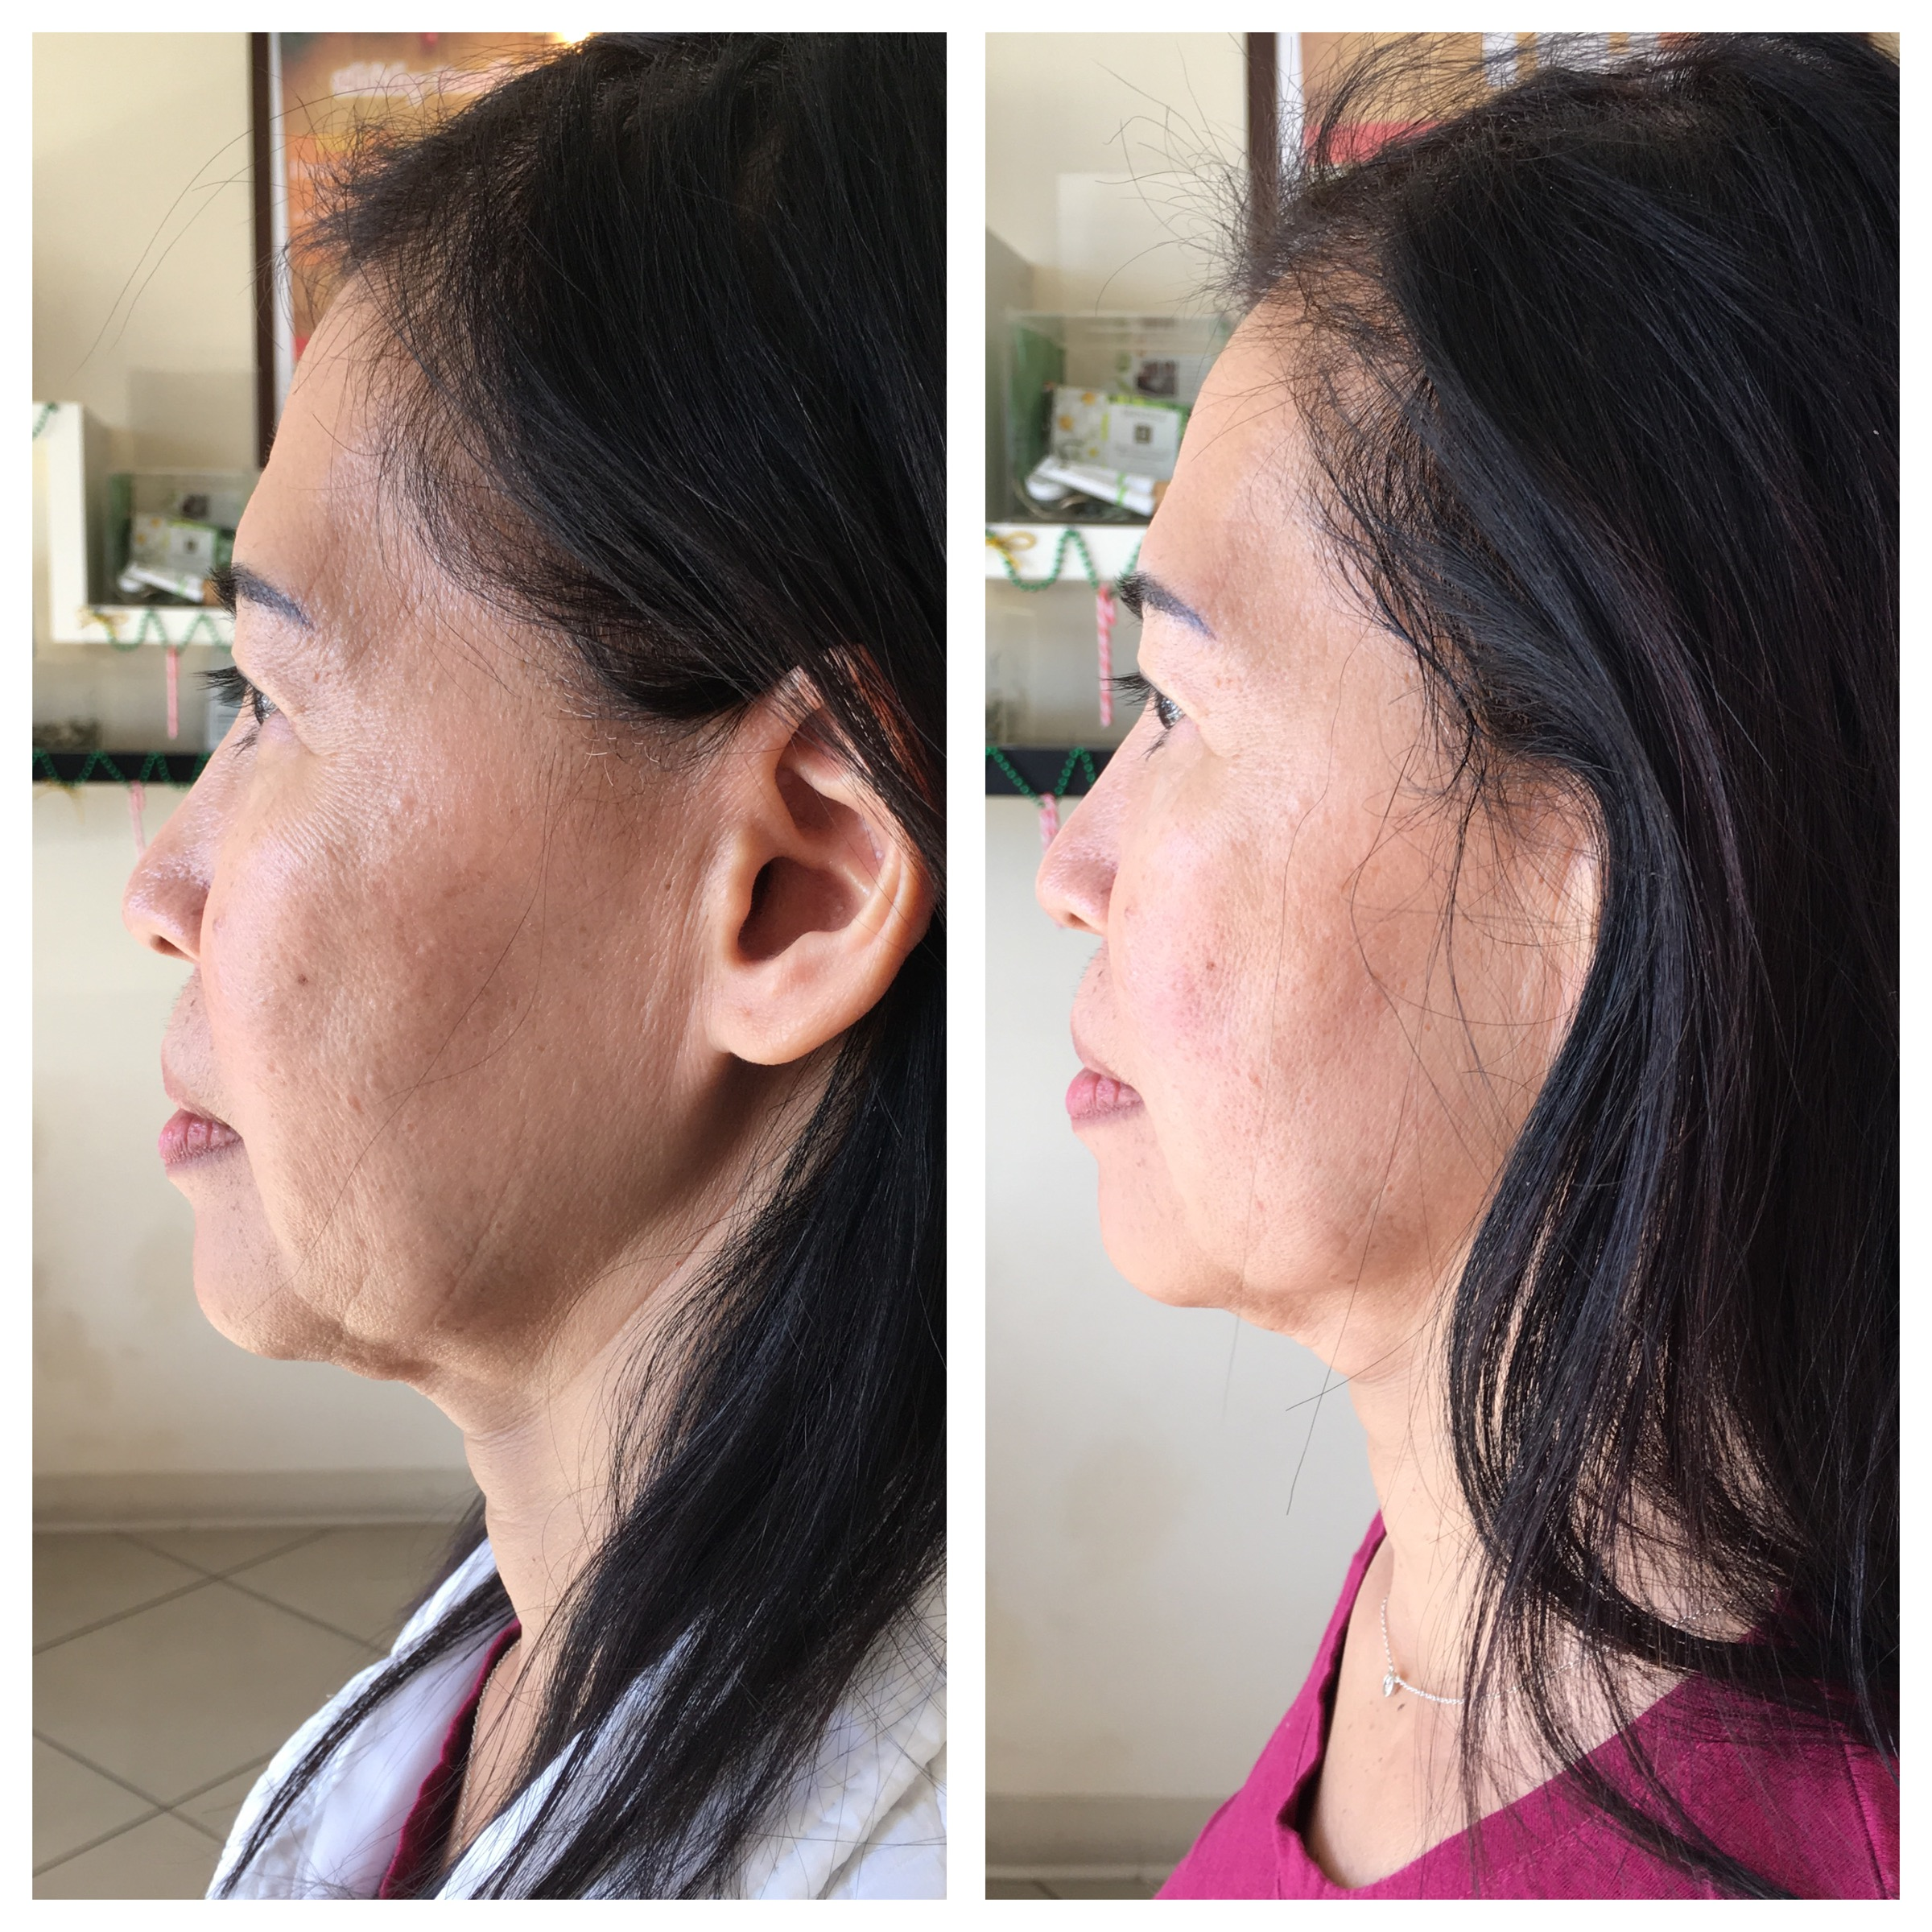 Ultherapy Specials Las Vegas NV